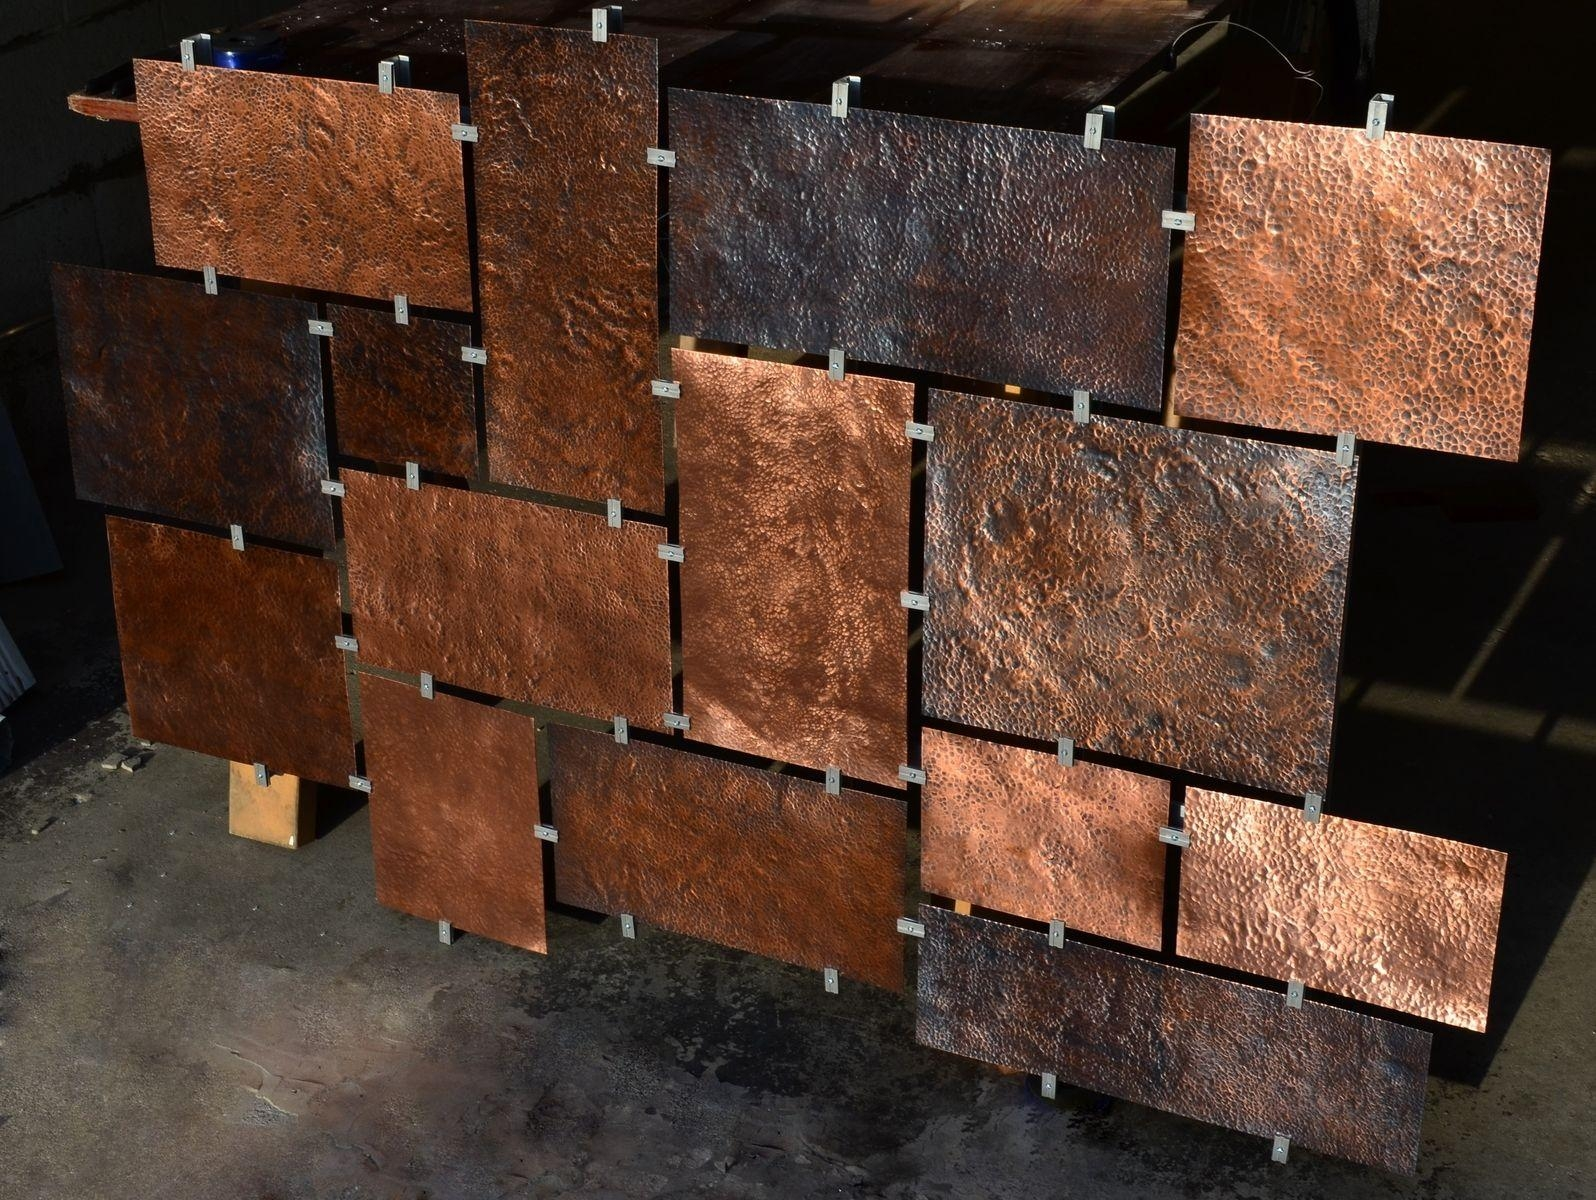 Hand Made Custom Hammered Copper Wall Artfabitecture Within Hammered Metal Wall Art (View 3 of 20)